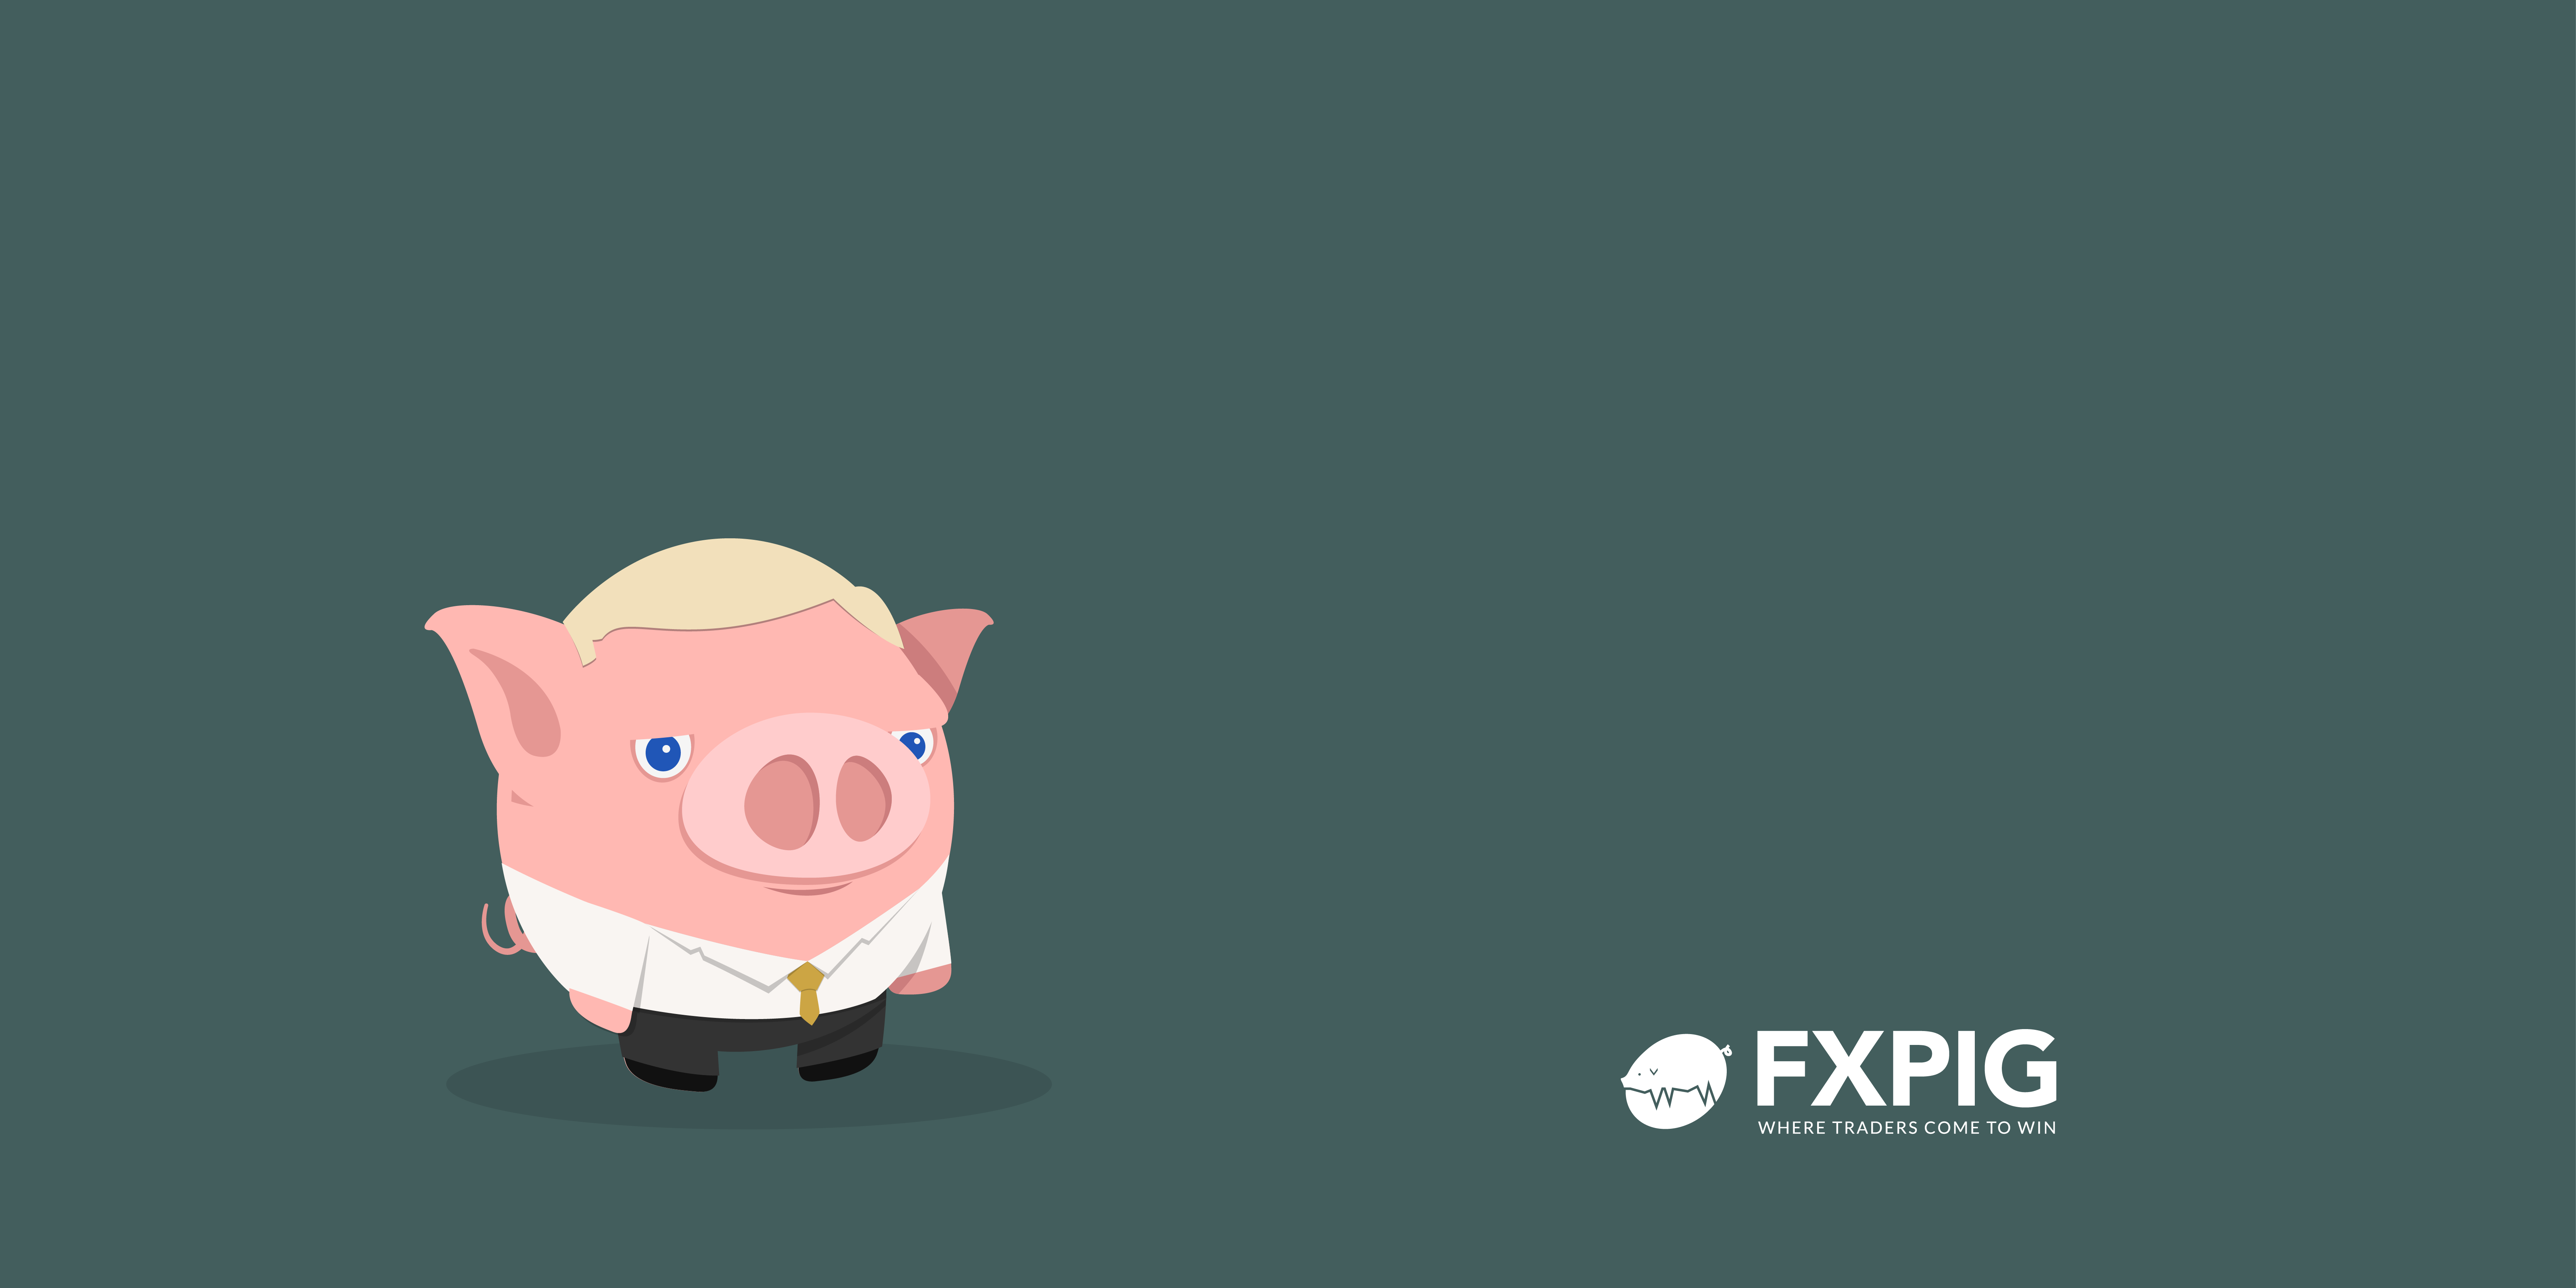 FOREX_trading-quote-ed-seykota0608_FXPIG